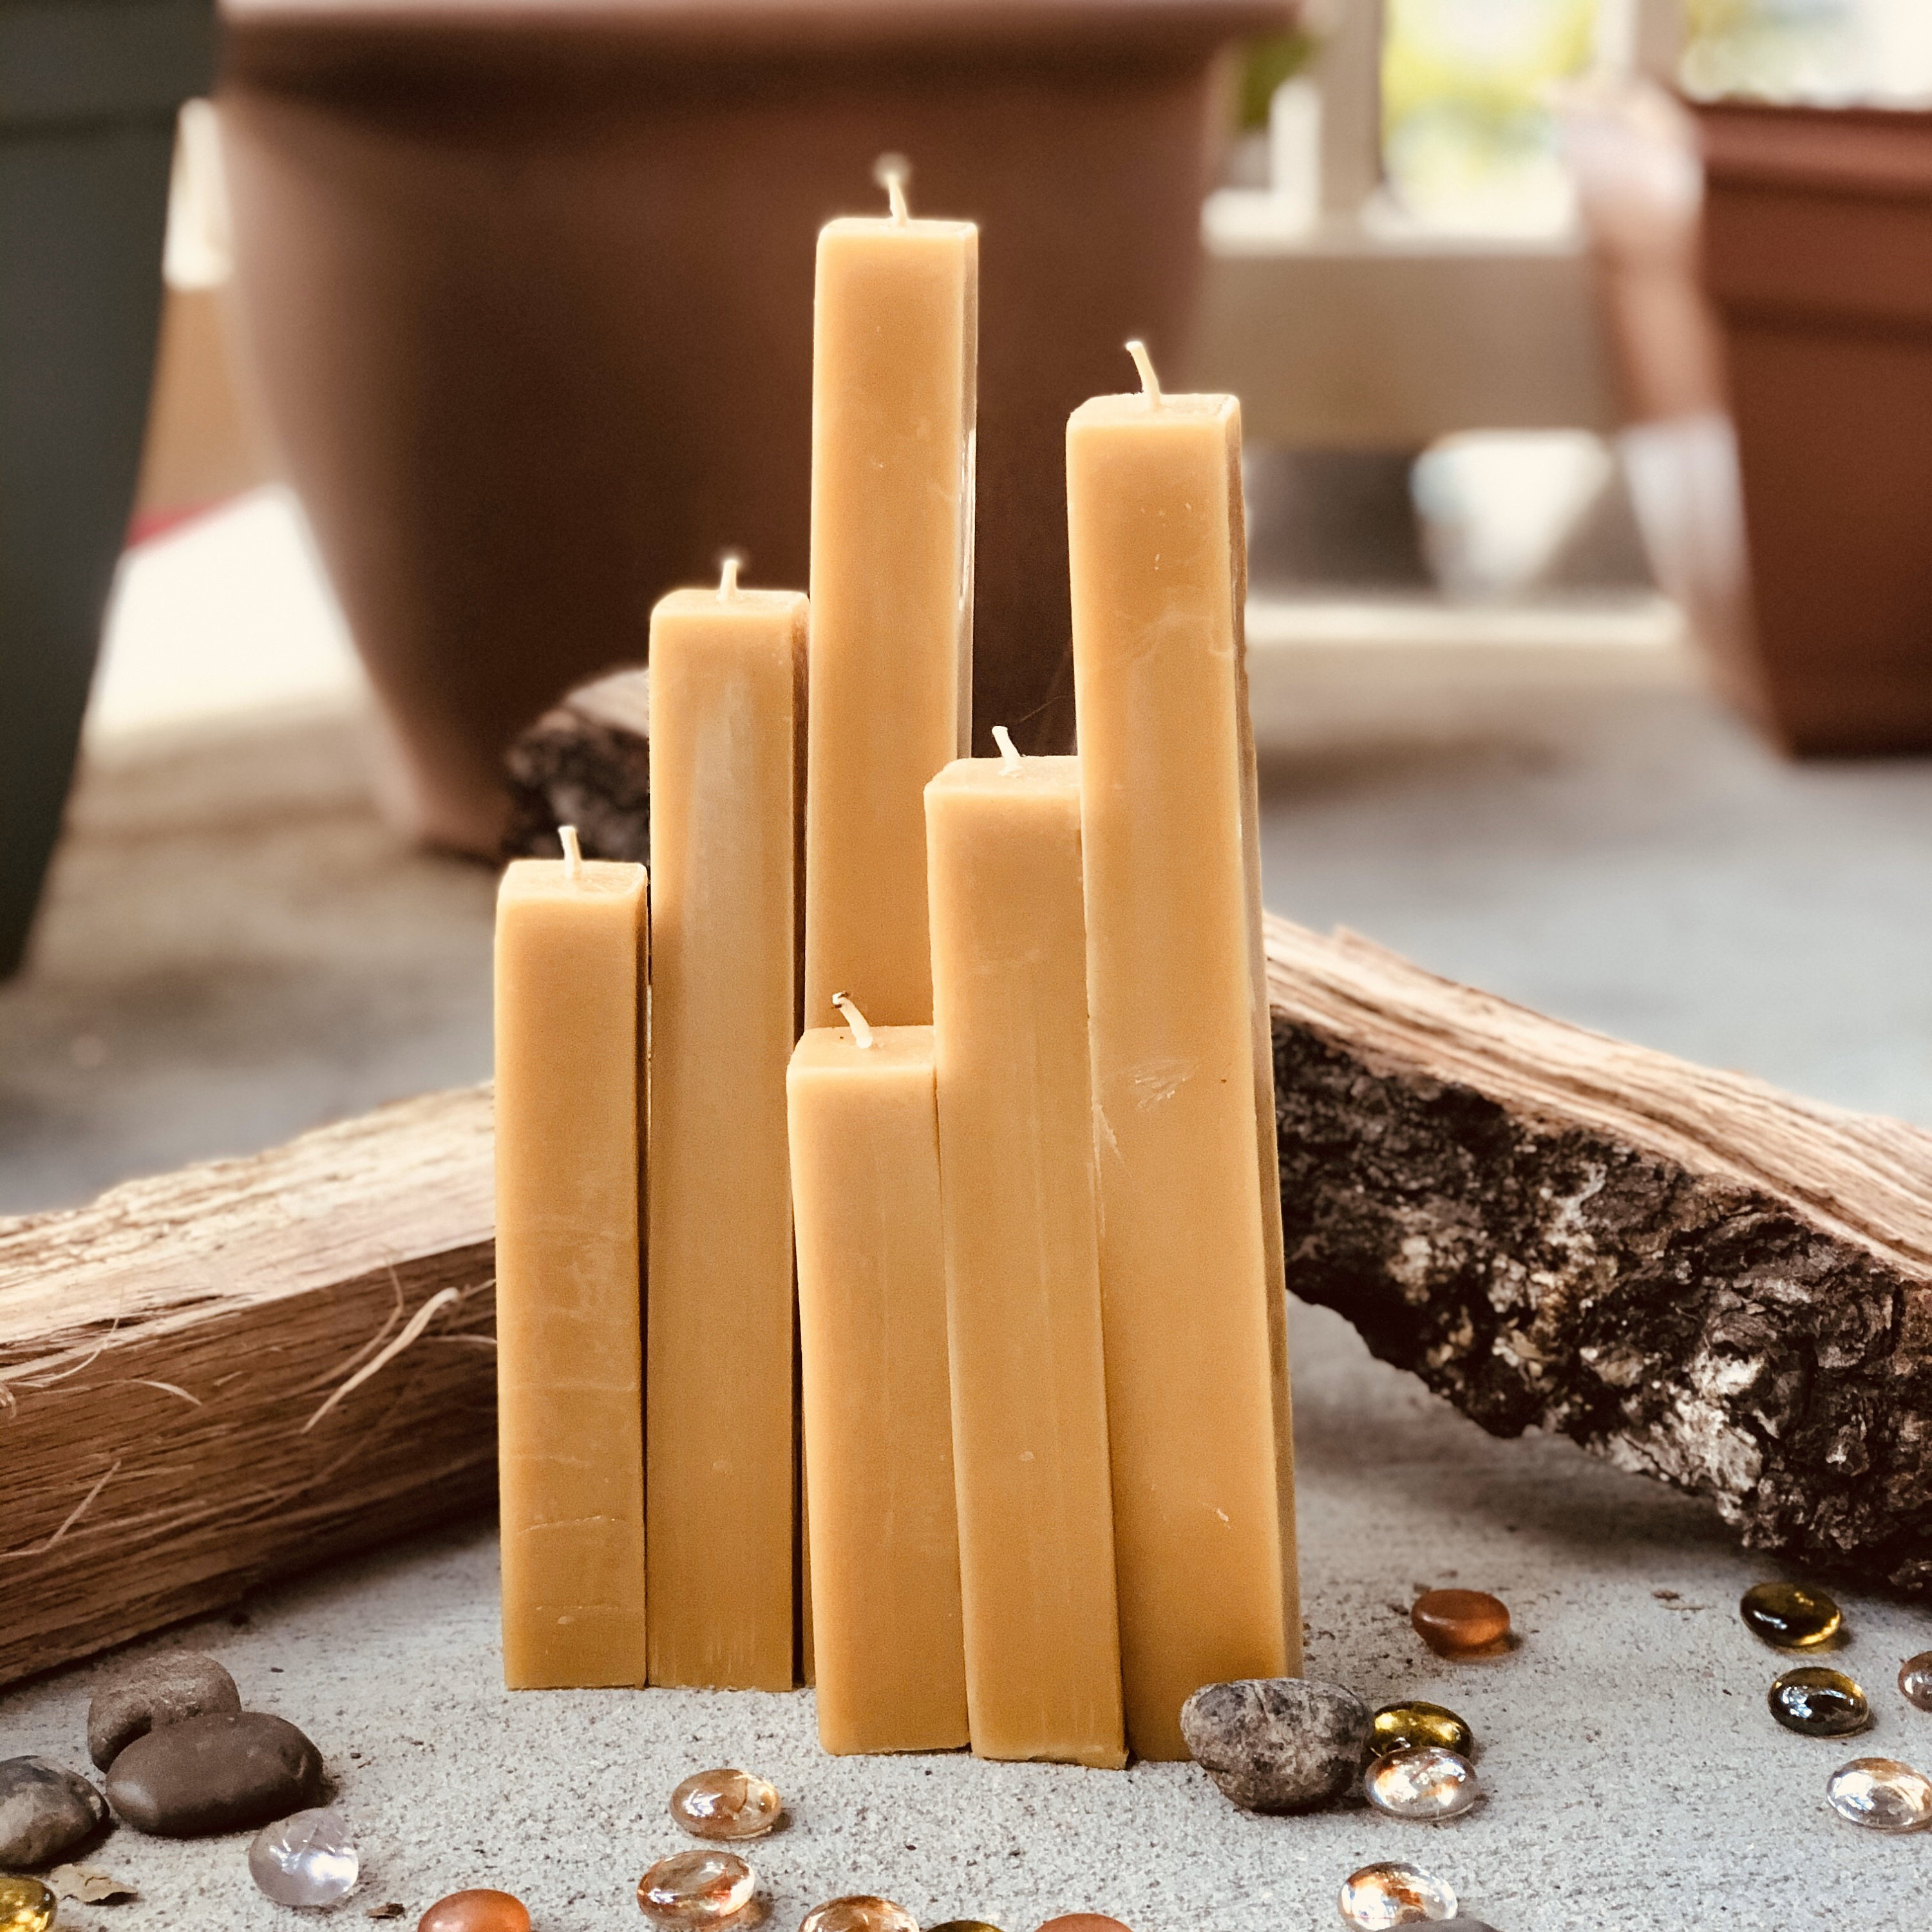 family-run /& Made In Canada 100/% Pure Beeswax by Gammys Beezwax Candles 3.4x3.5 Rustic Beeswax Pillar hand-poured